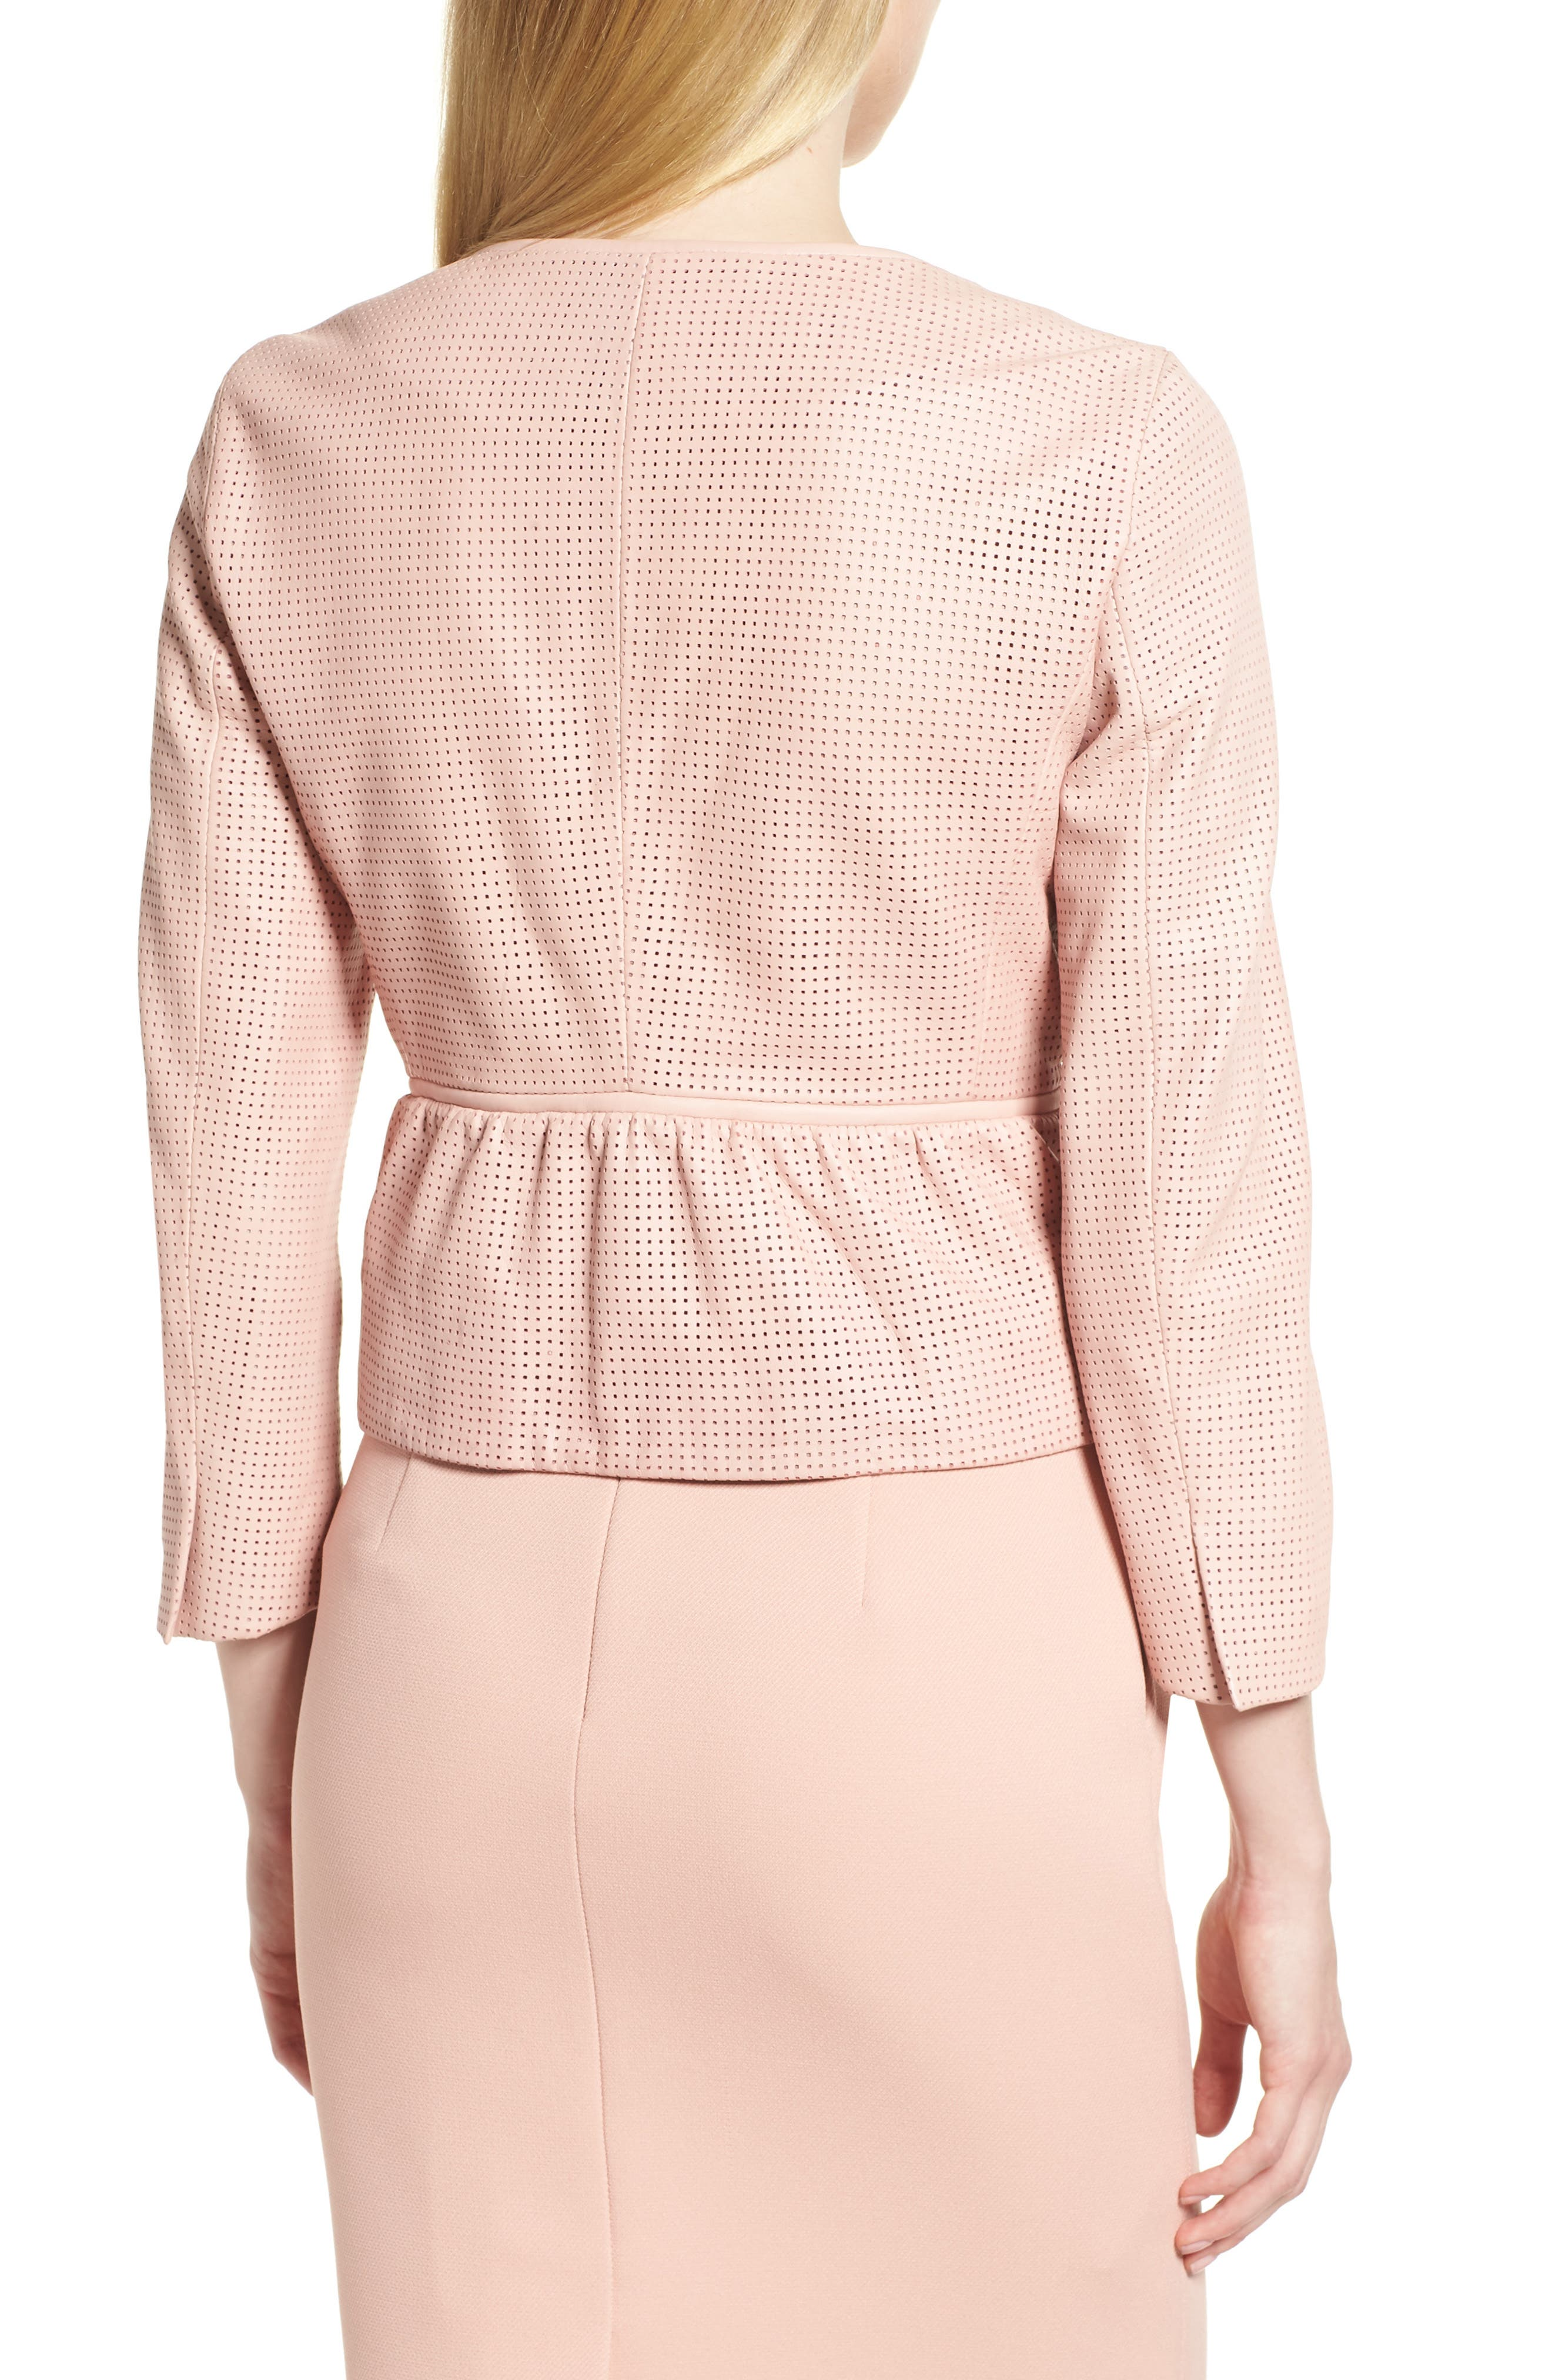 Sallotina Perforated Leather Jacket,                             Alternate thumbnail 2, color,                             Blush